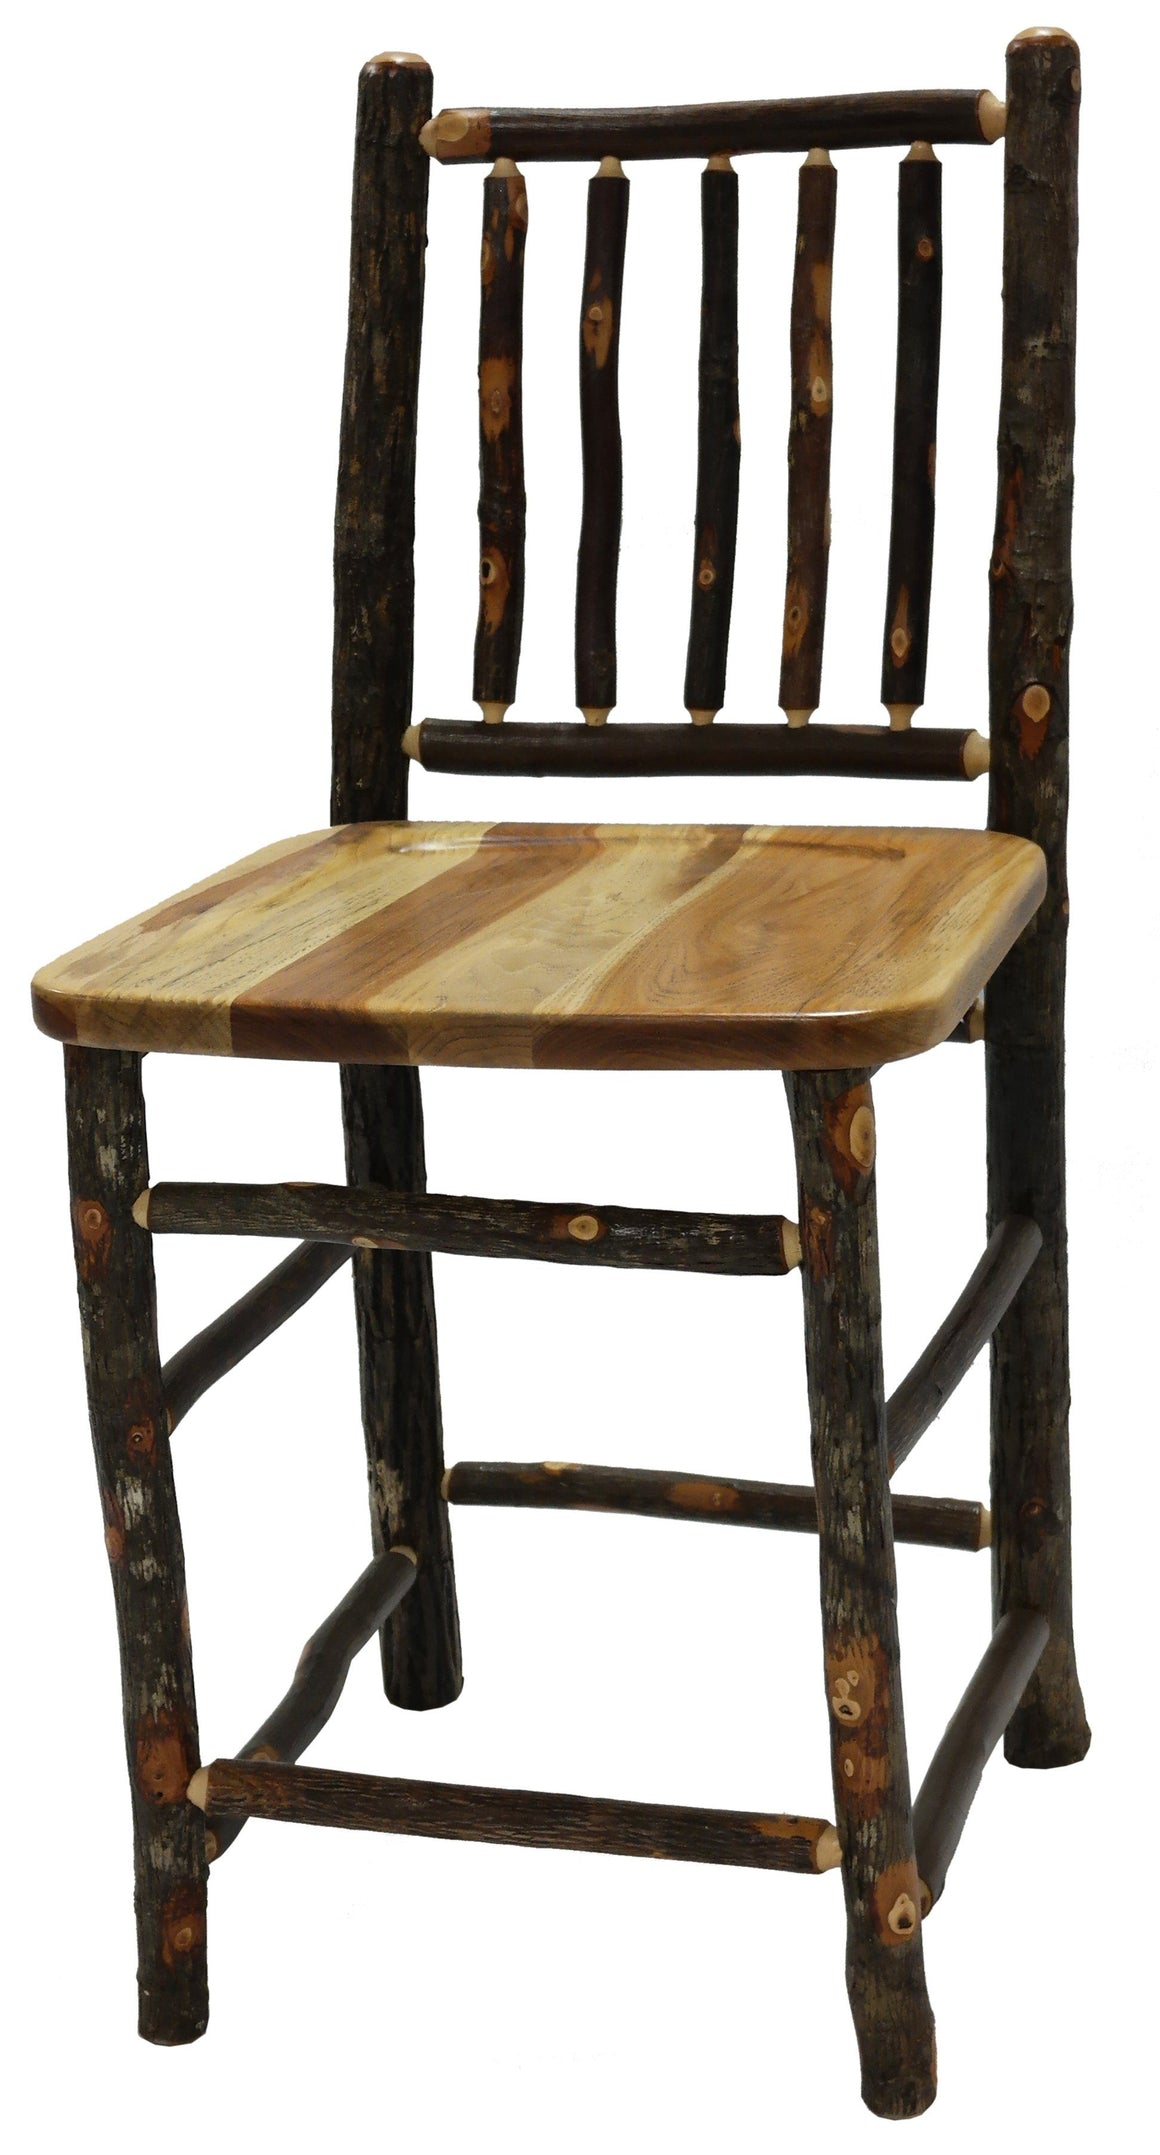 "Natural Hickory Log Counter Stool - 24"" high - Wood Seat - Standard Finish Stool Fireside Lodge Cognac - Wood Seat"